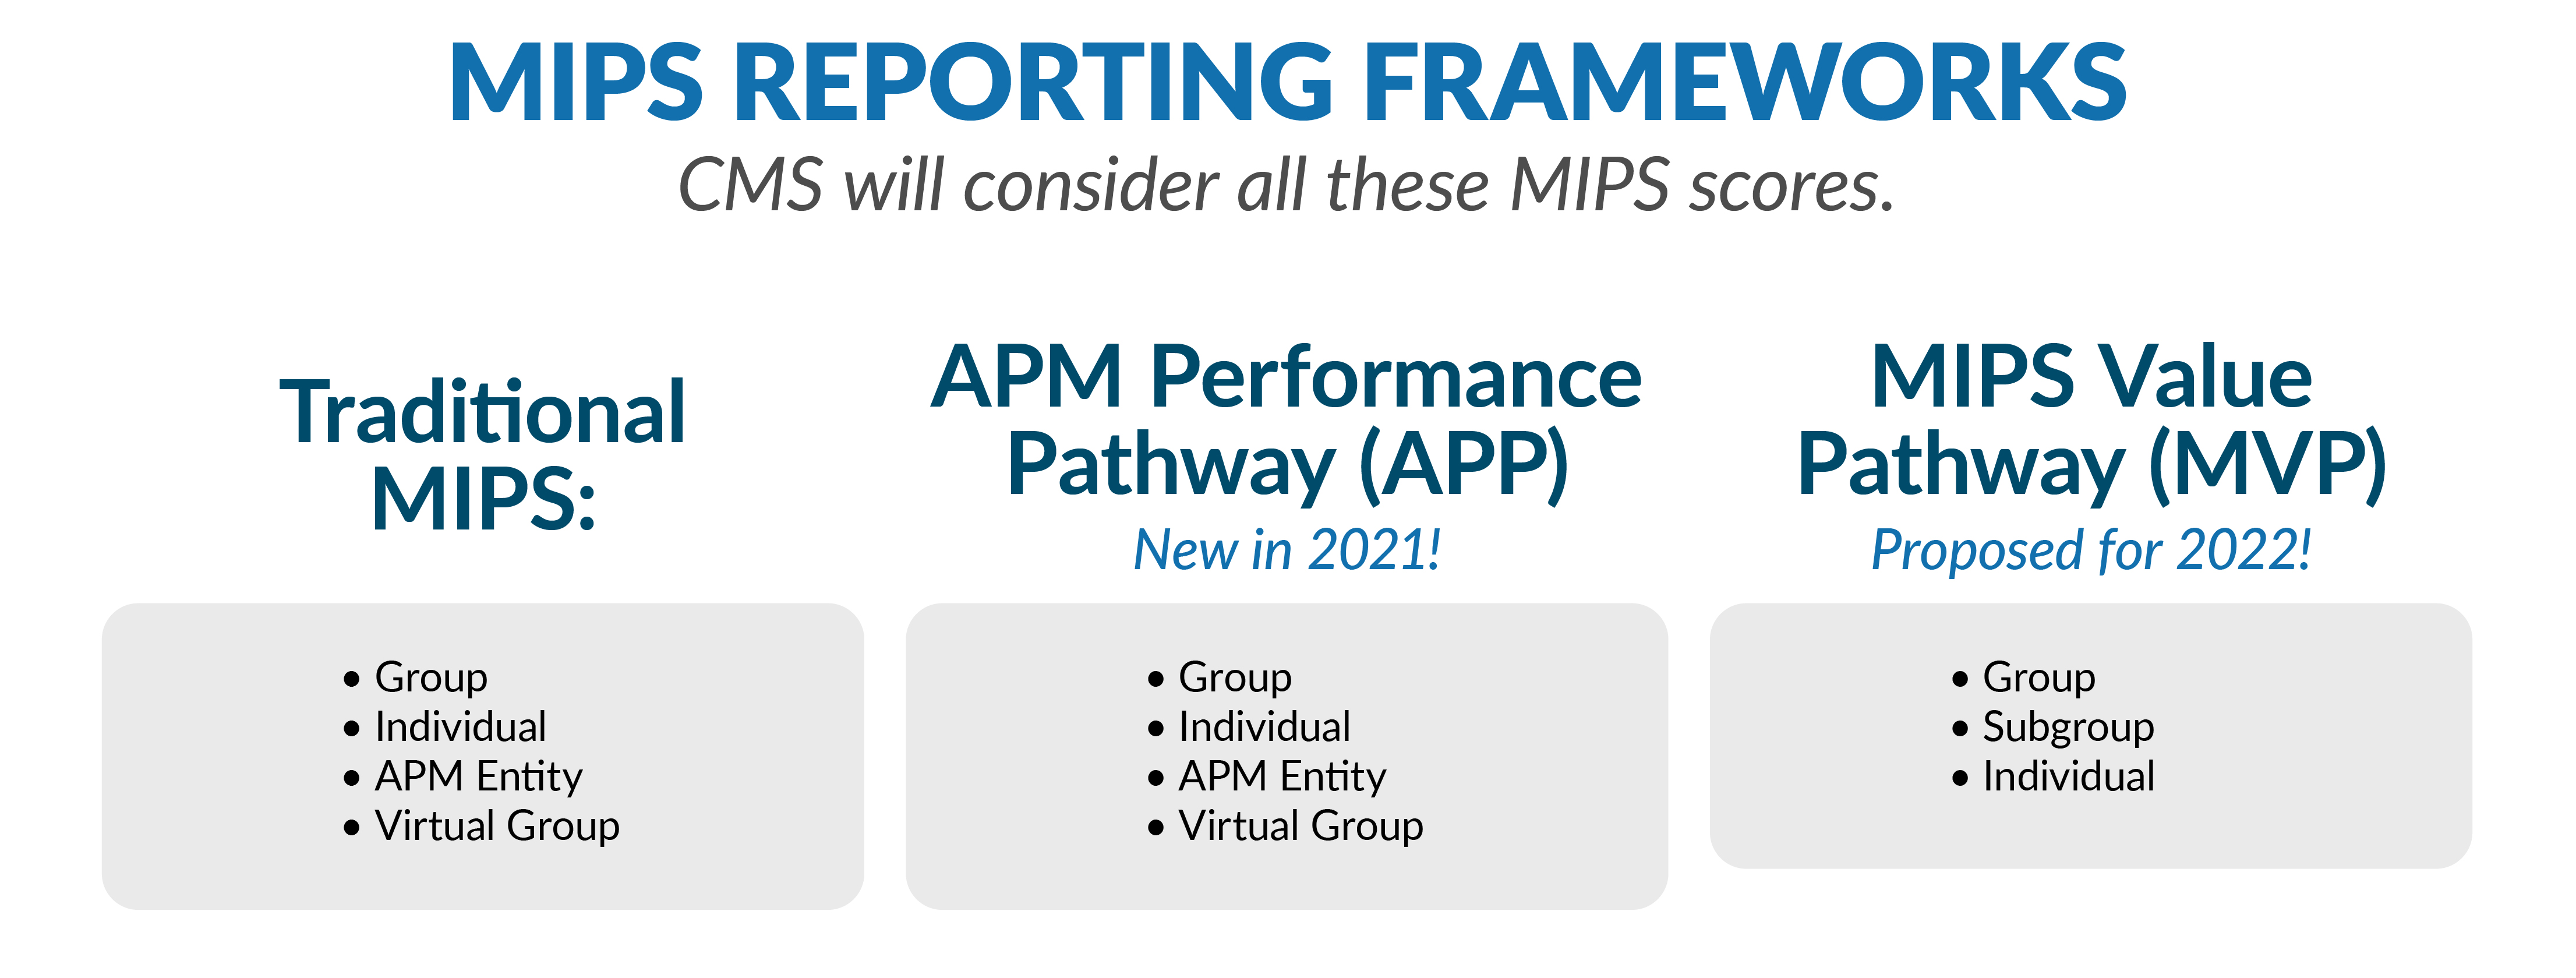 MIPS Reporting framework chart (Traditional MIPS, APM, MIPS Value MVP)